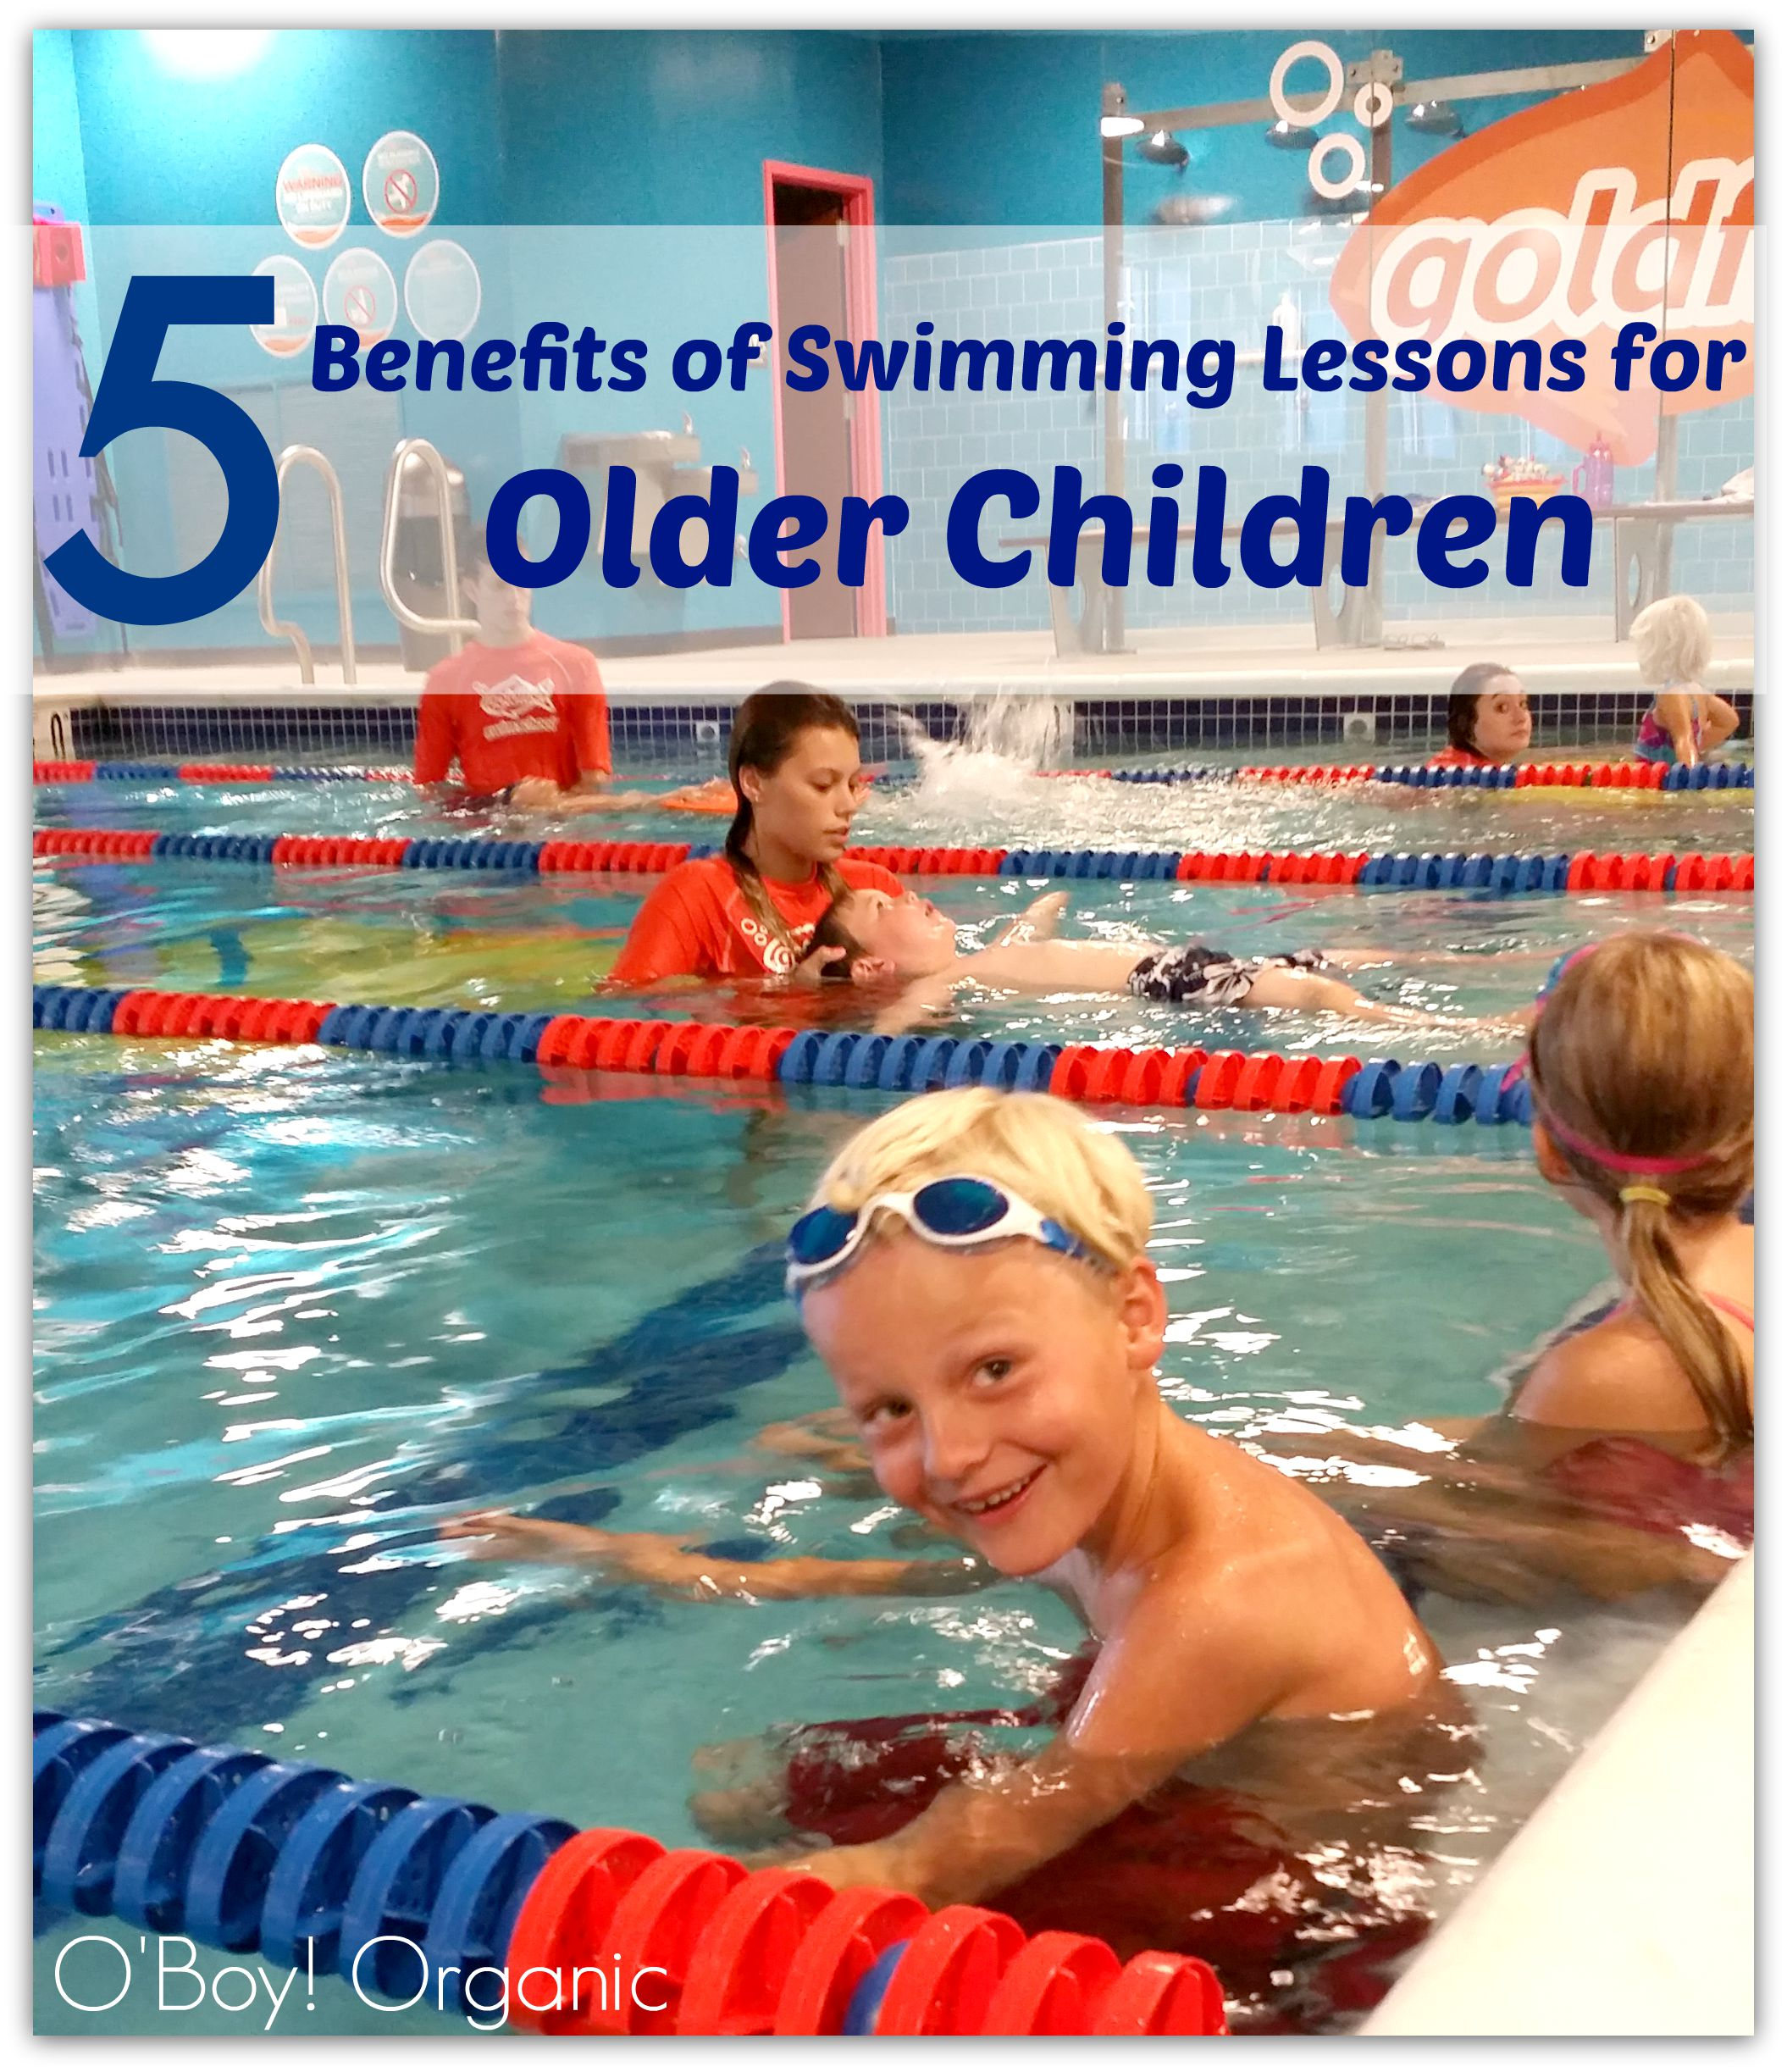 How Children Benefit From Swimming - British Swim School